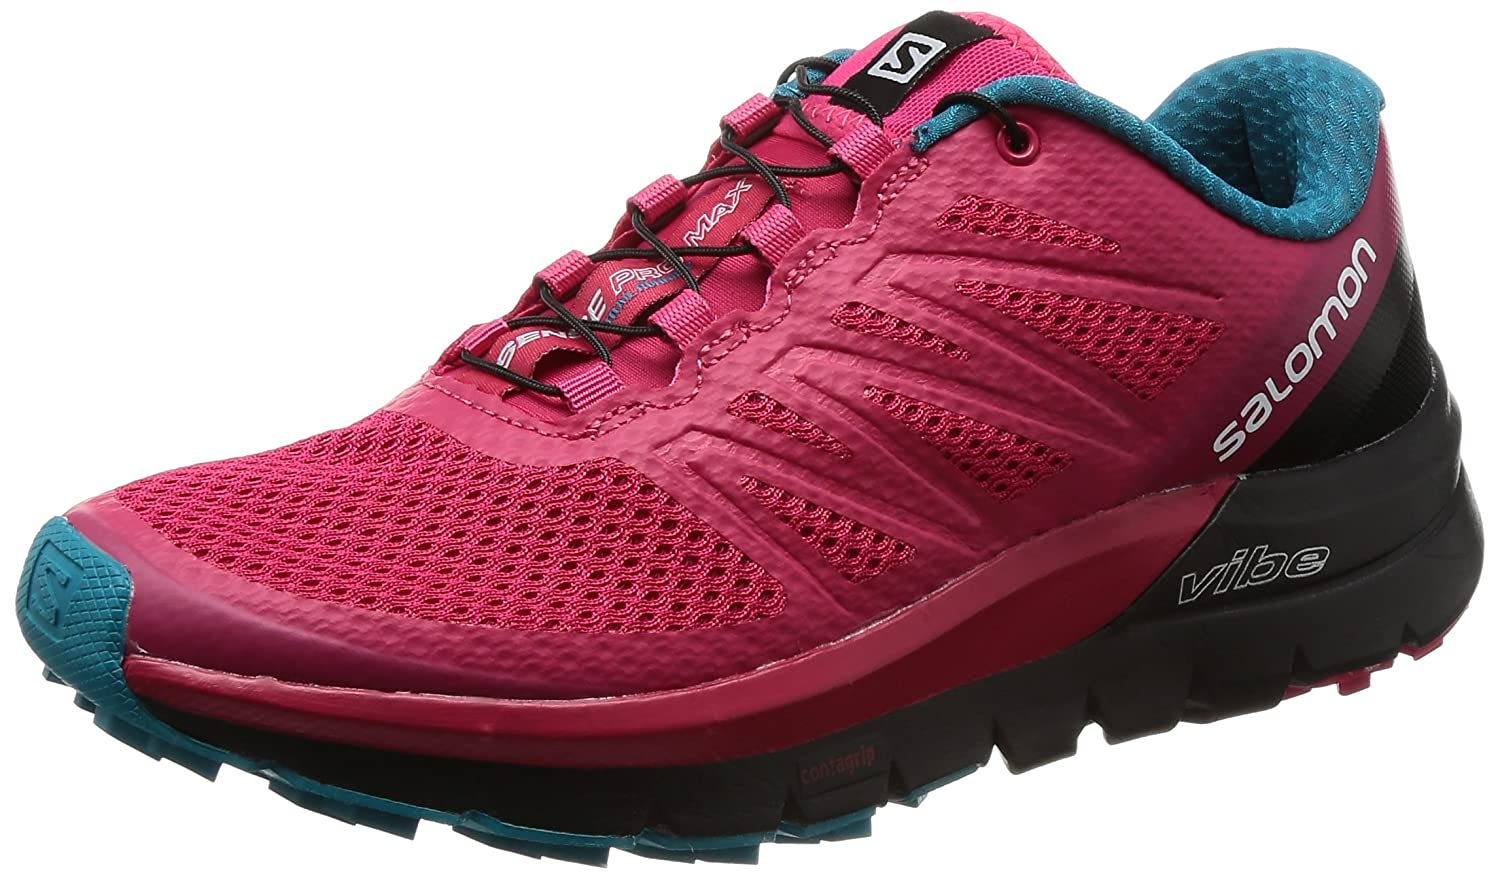 Salomon Women's Sense Pro Max Manmade, Mesh Trail Running Sneakers B01N78XE8R 5 B(M) US|Virtual Pink, Black, Enamel Blue